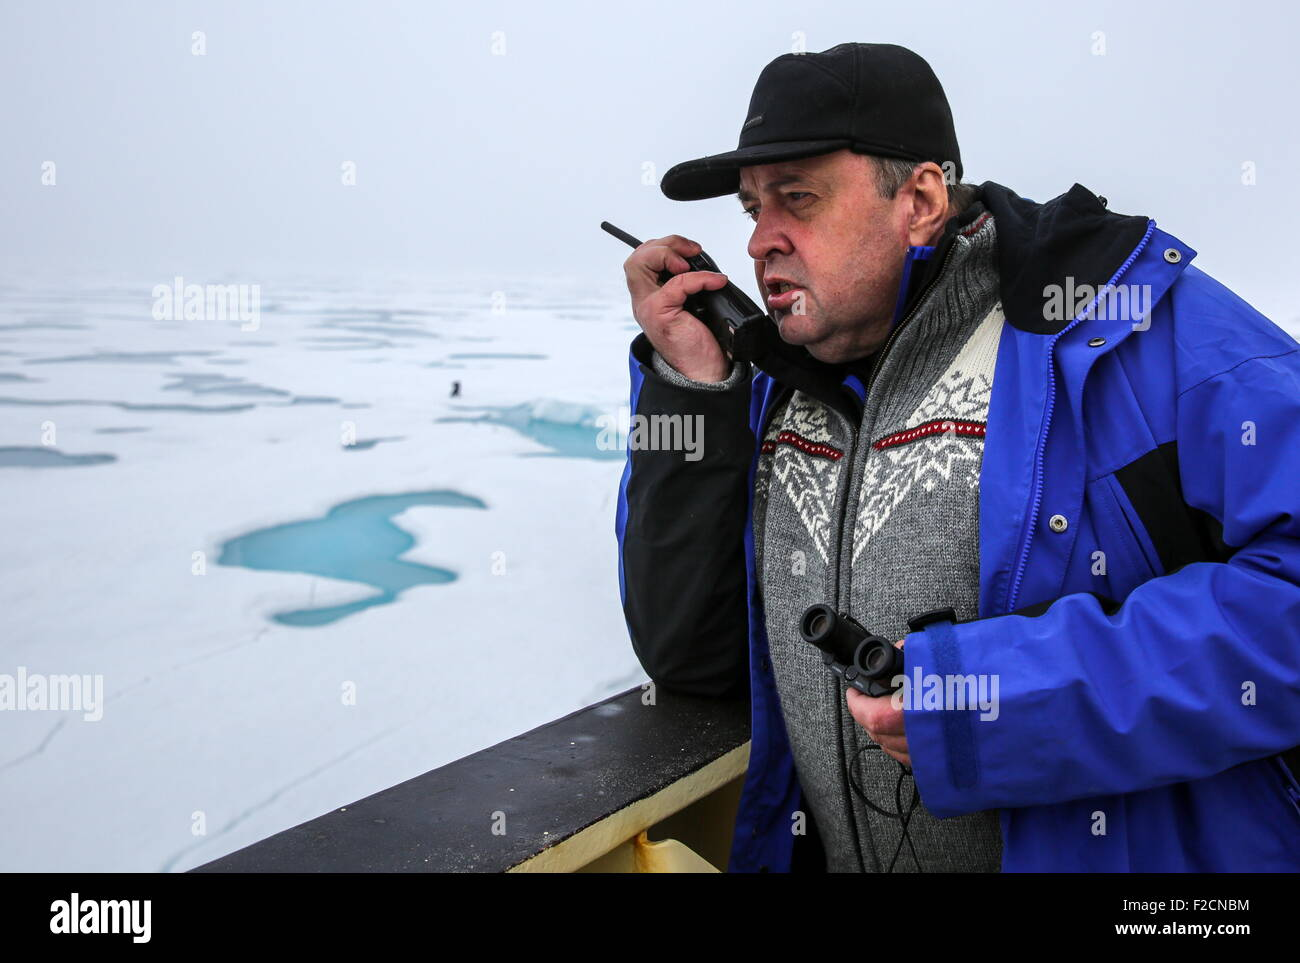 Alexander Orlov Stock Photos & Alexander Orlov Stock Images - Alamy